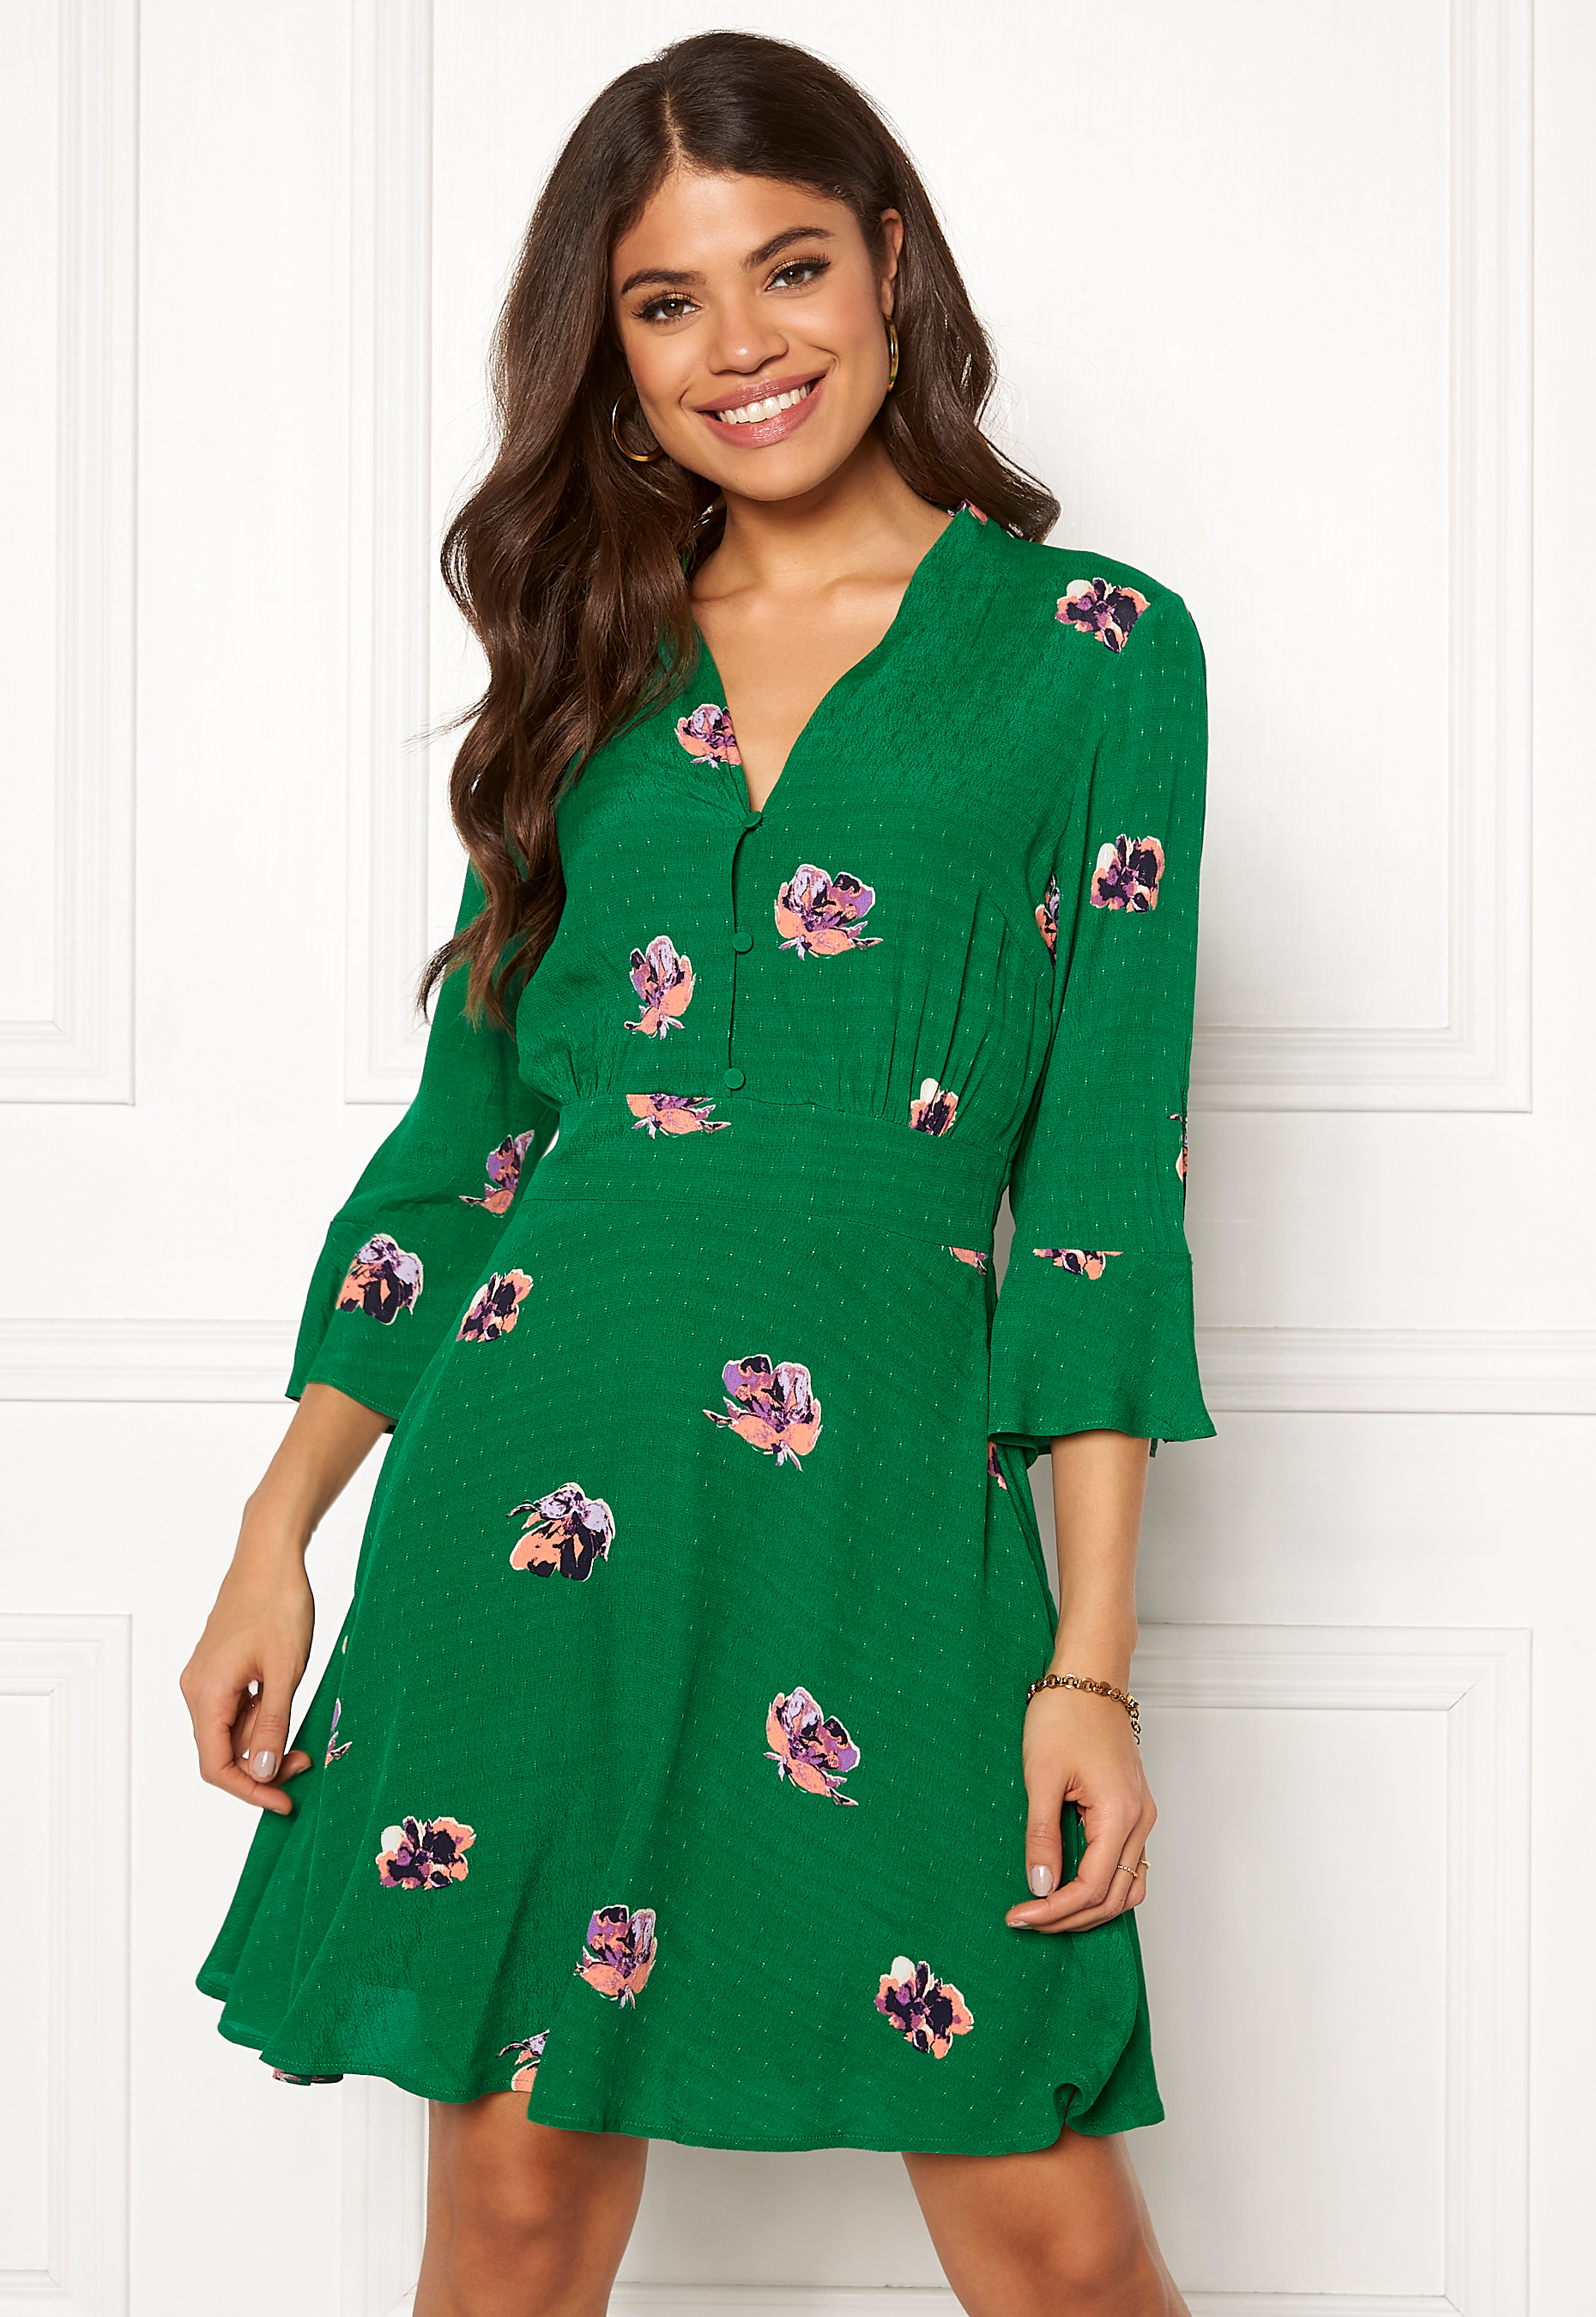 34 Y a Dress Green Bubbleroom s Verdant Avirala Aop iTOZwXlPuk